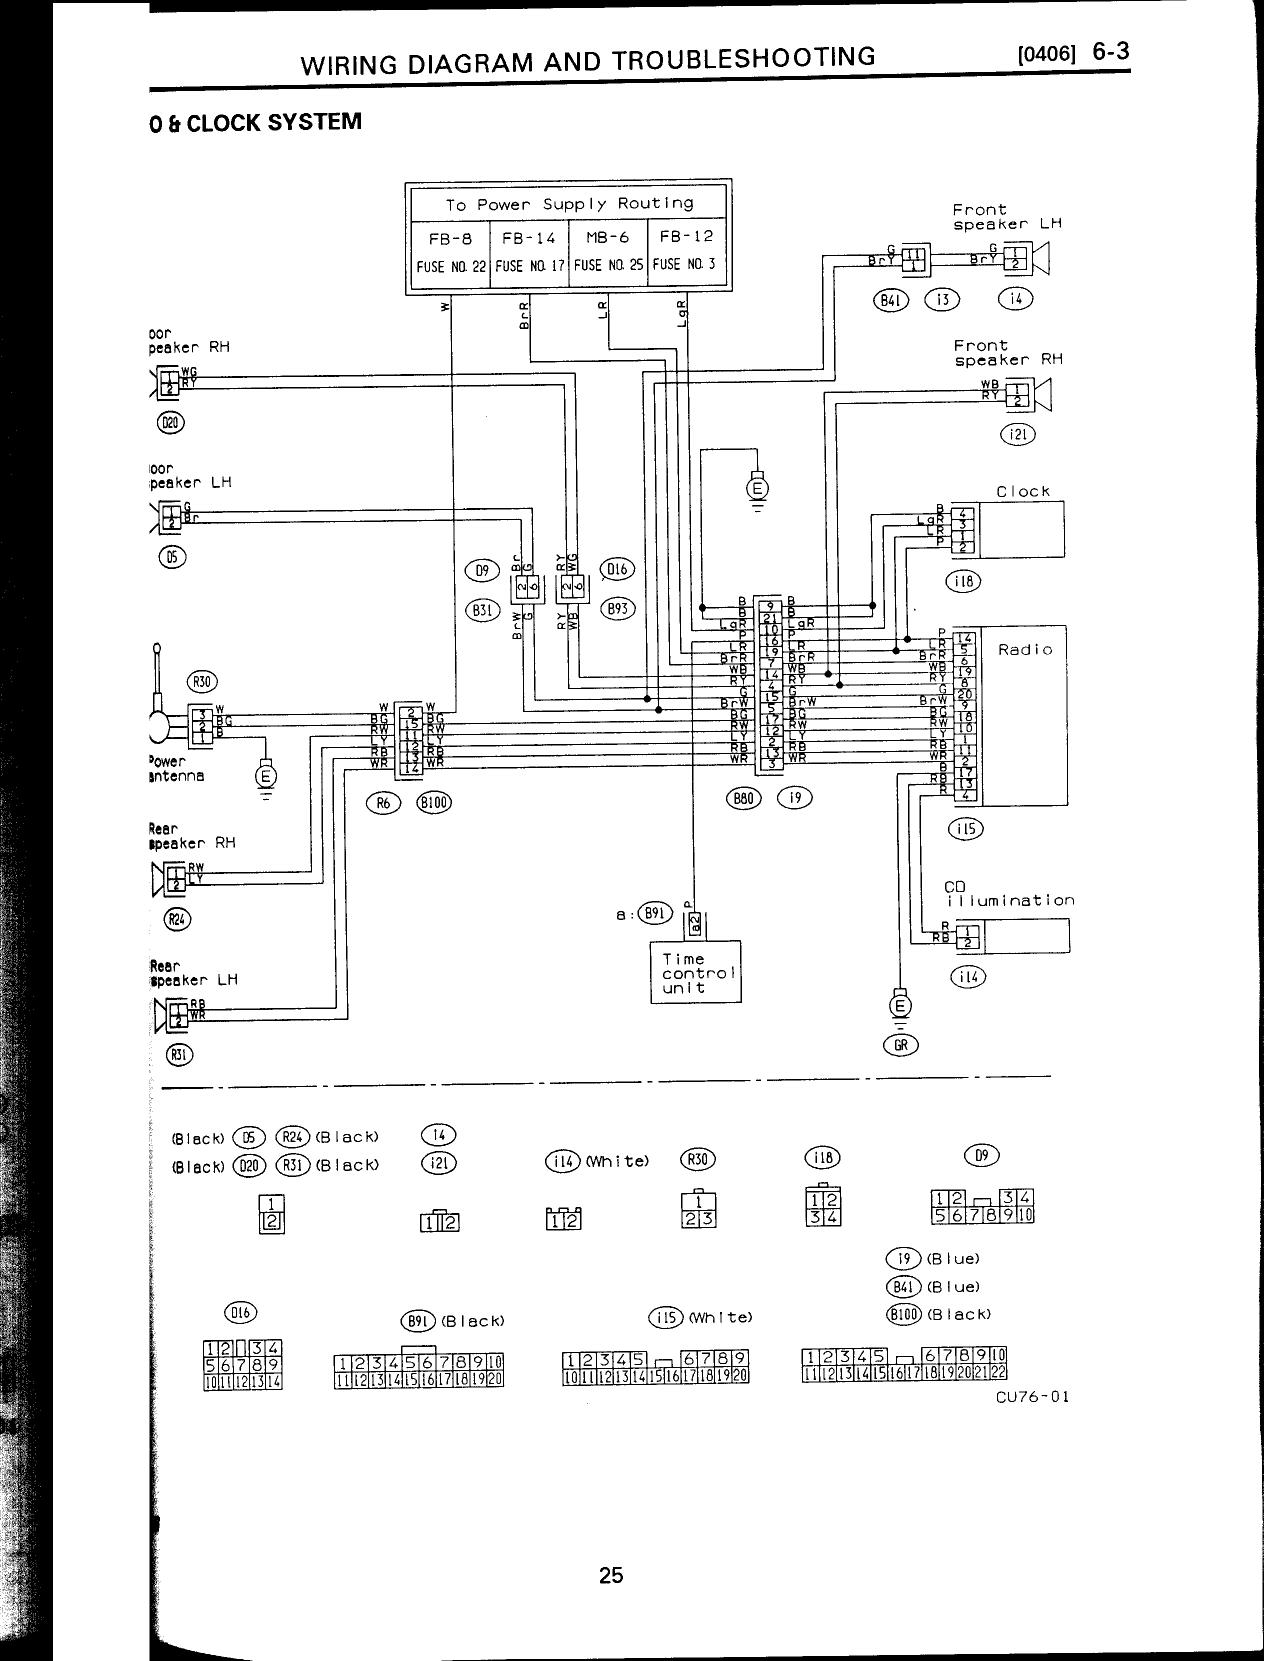 hight resolution of 94 impreza wiring diagram wiring diagram for you wiring diagram for 1997 subaru impreza get free image about wiring